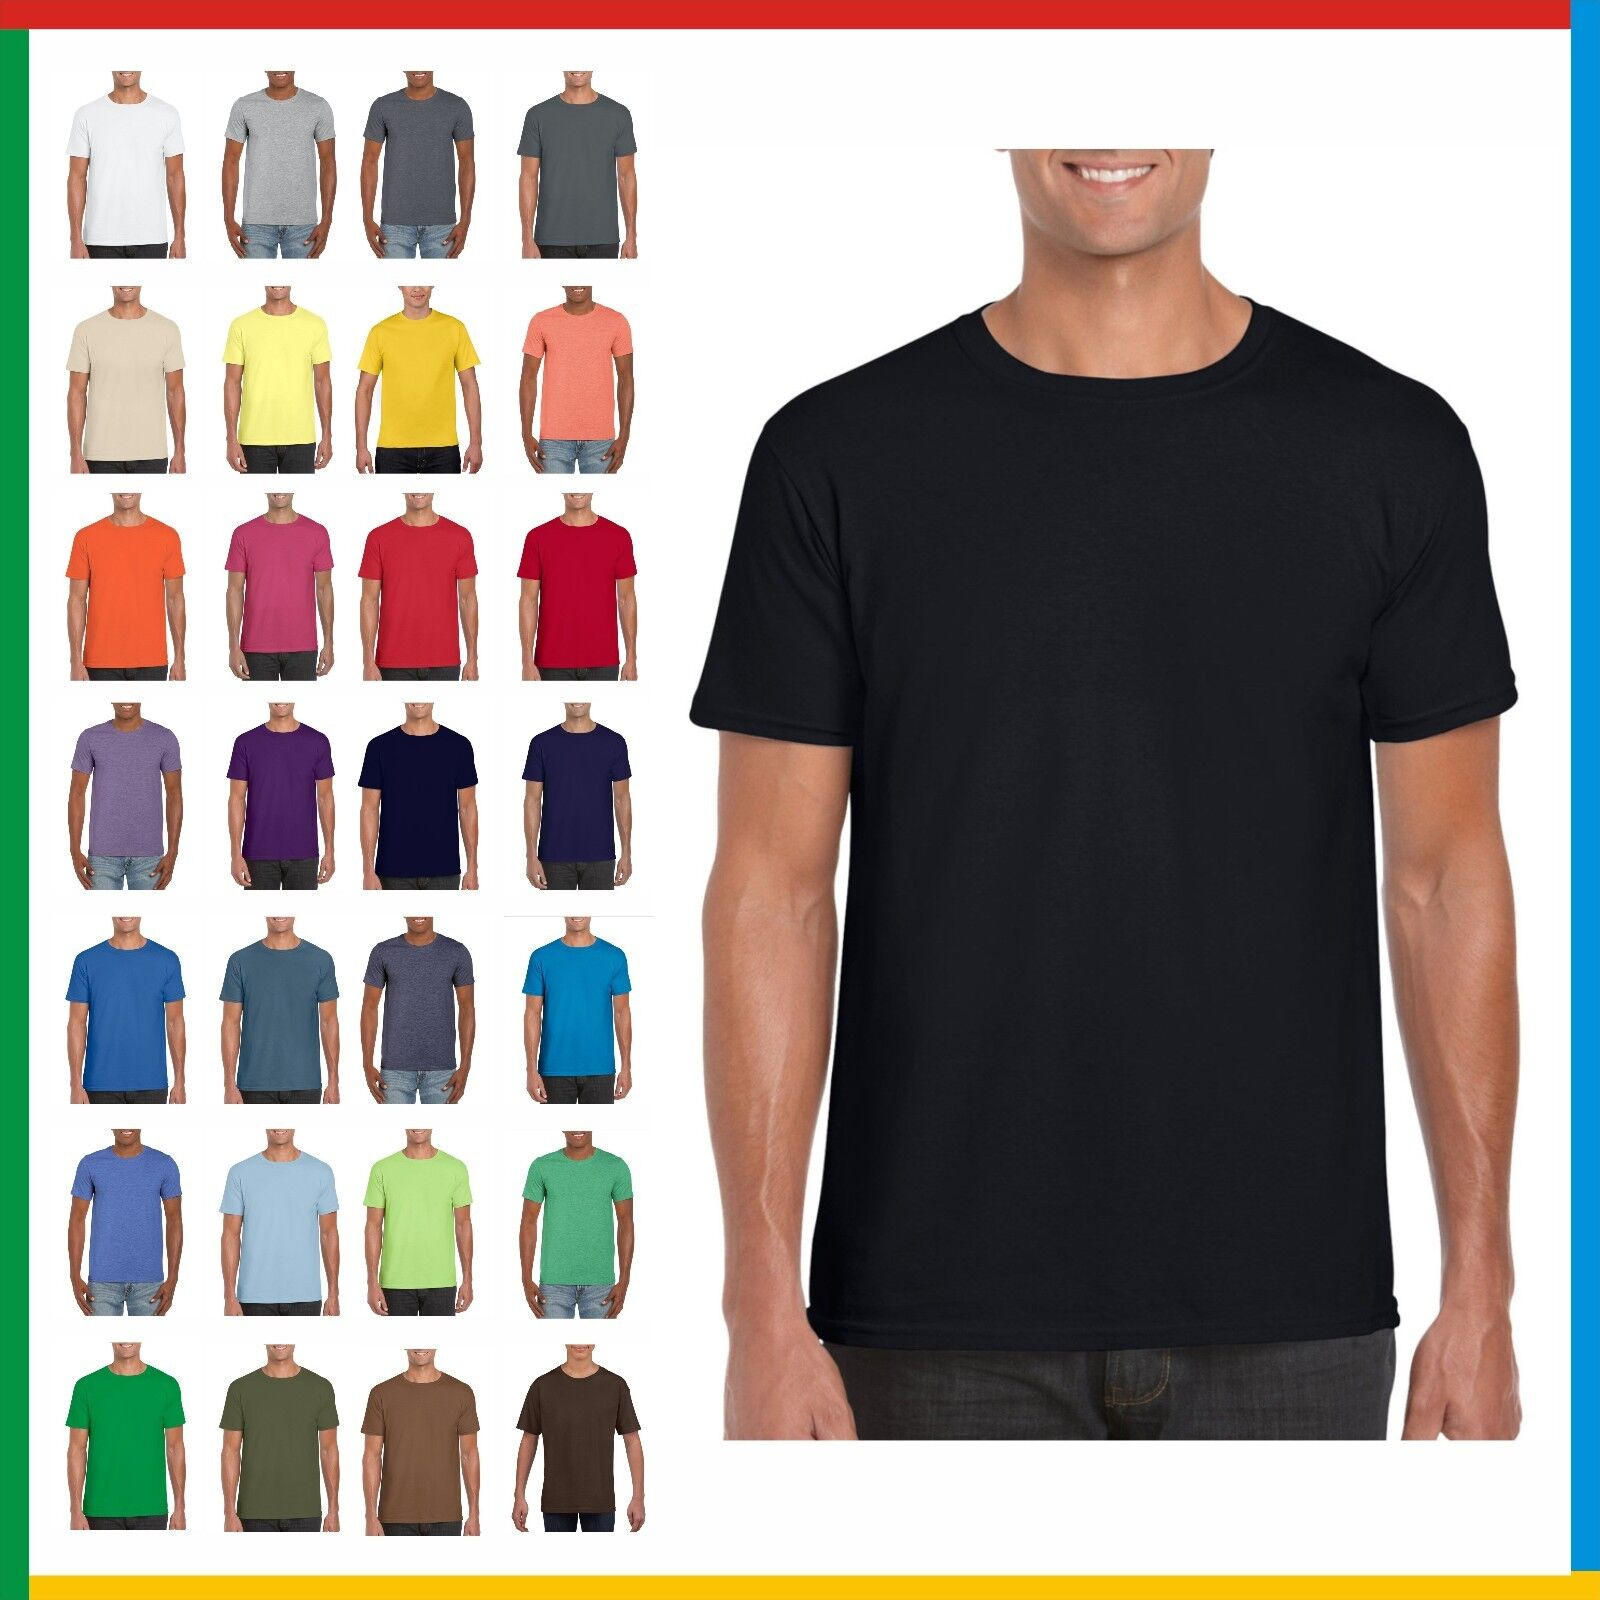 100% RINGSPUN PLAIN COTTON T-SHIRT GILDAN Soft Feel T SHIRT: Small - 3XL Tees